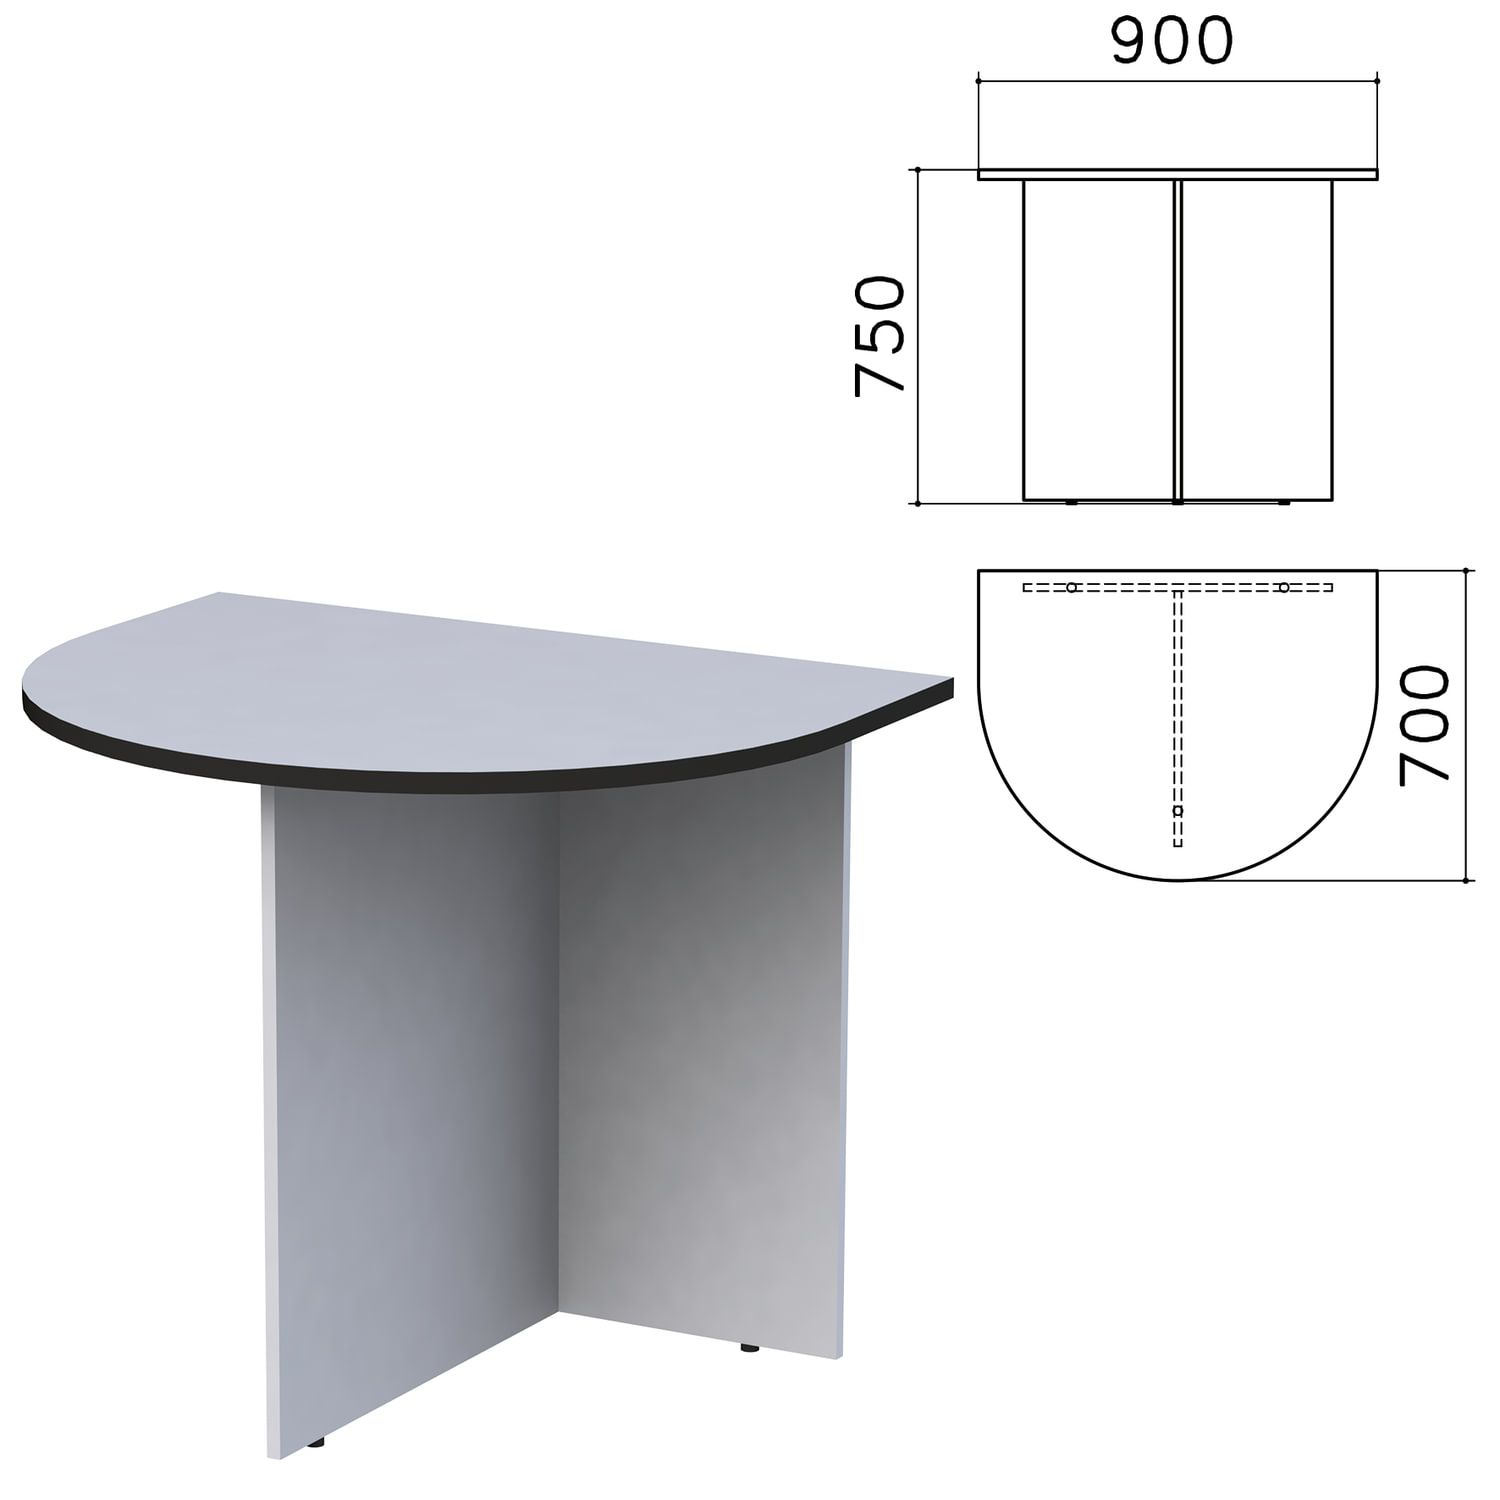 Table to the negotiating table (640112) Monolith, 900 x700s750 mm, grey